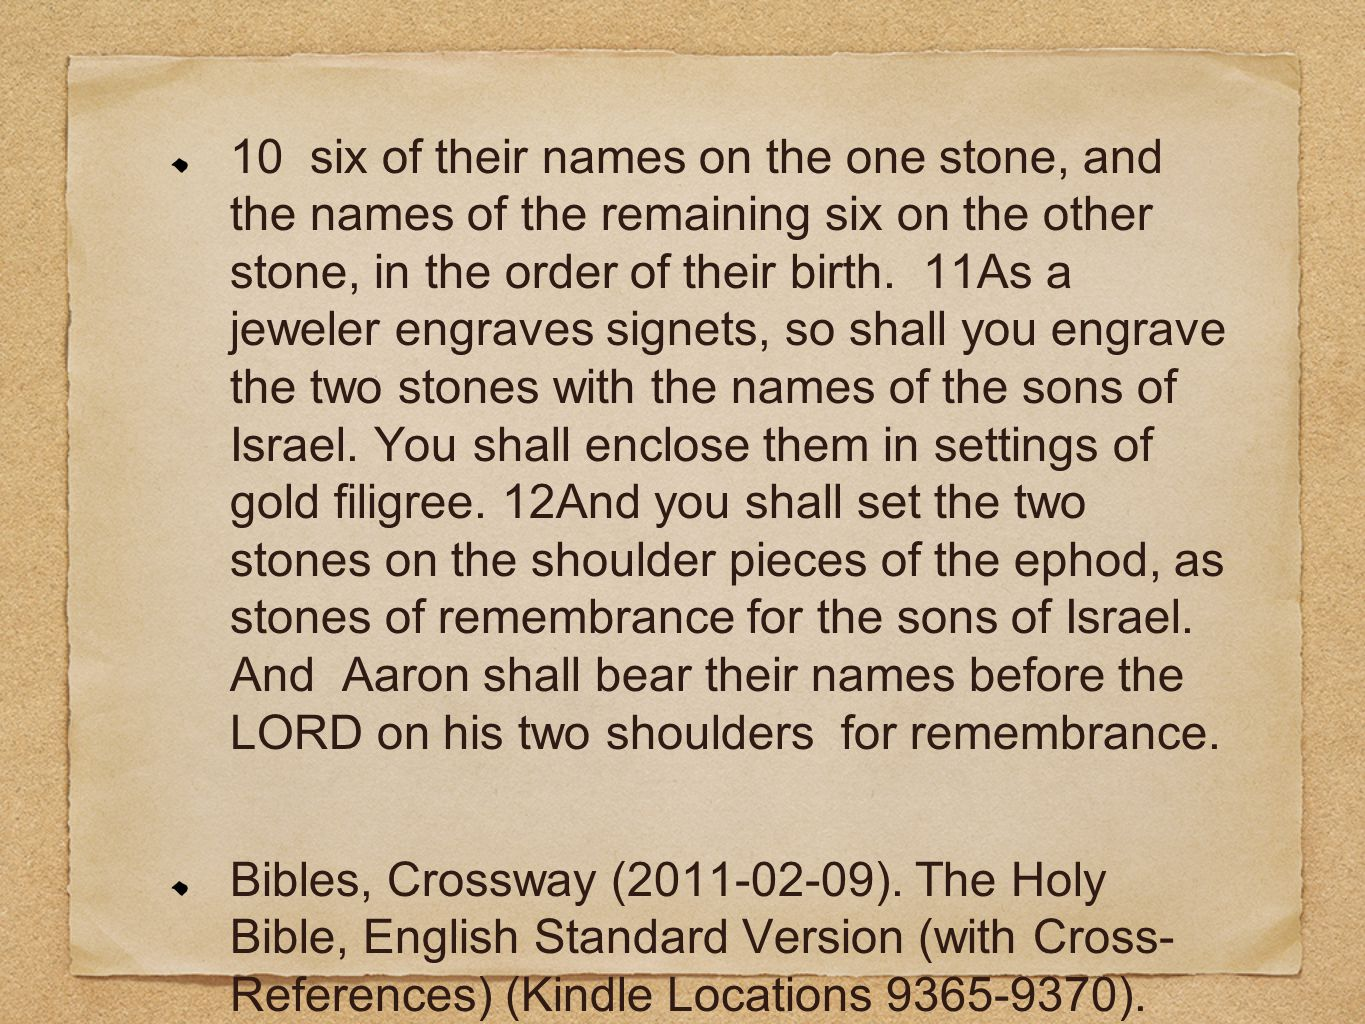 10 six of their names on the one stone, and the names of the remaining six on the other stone, in the order of their birth. 11As a jeweler engraves si